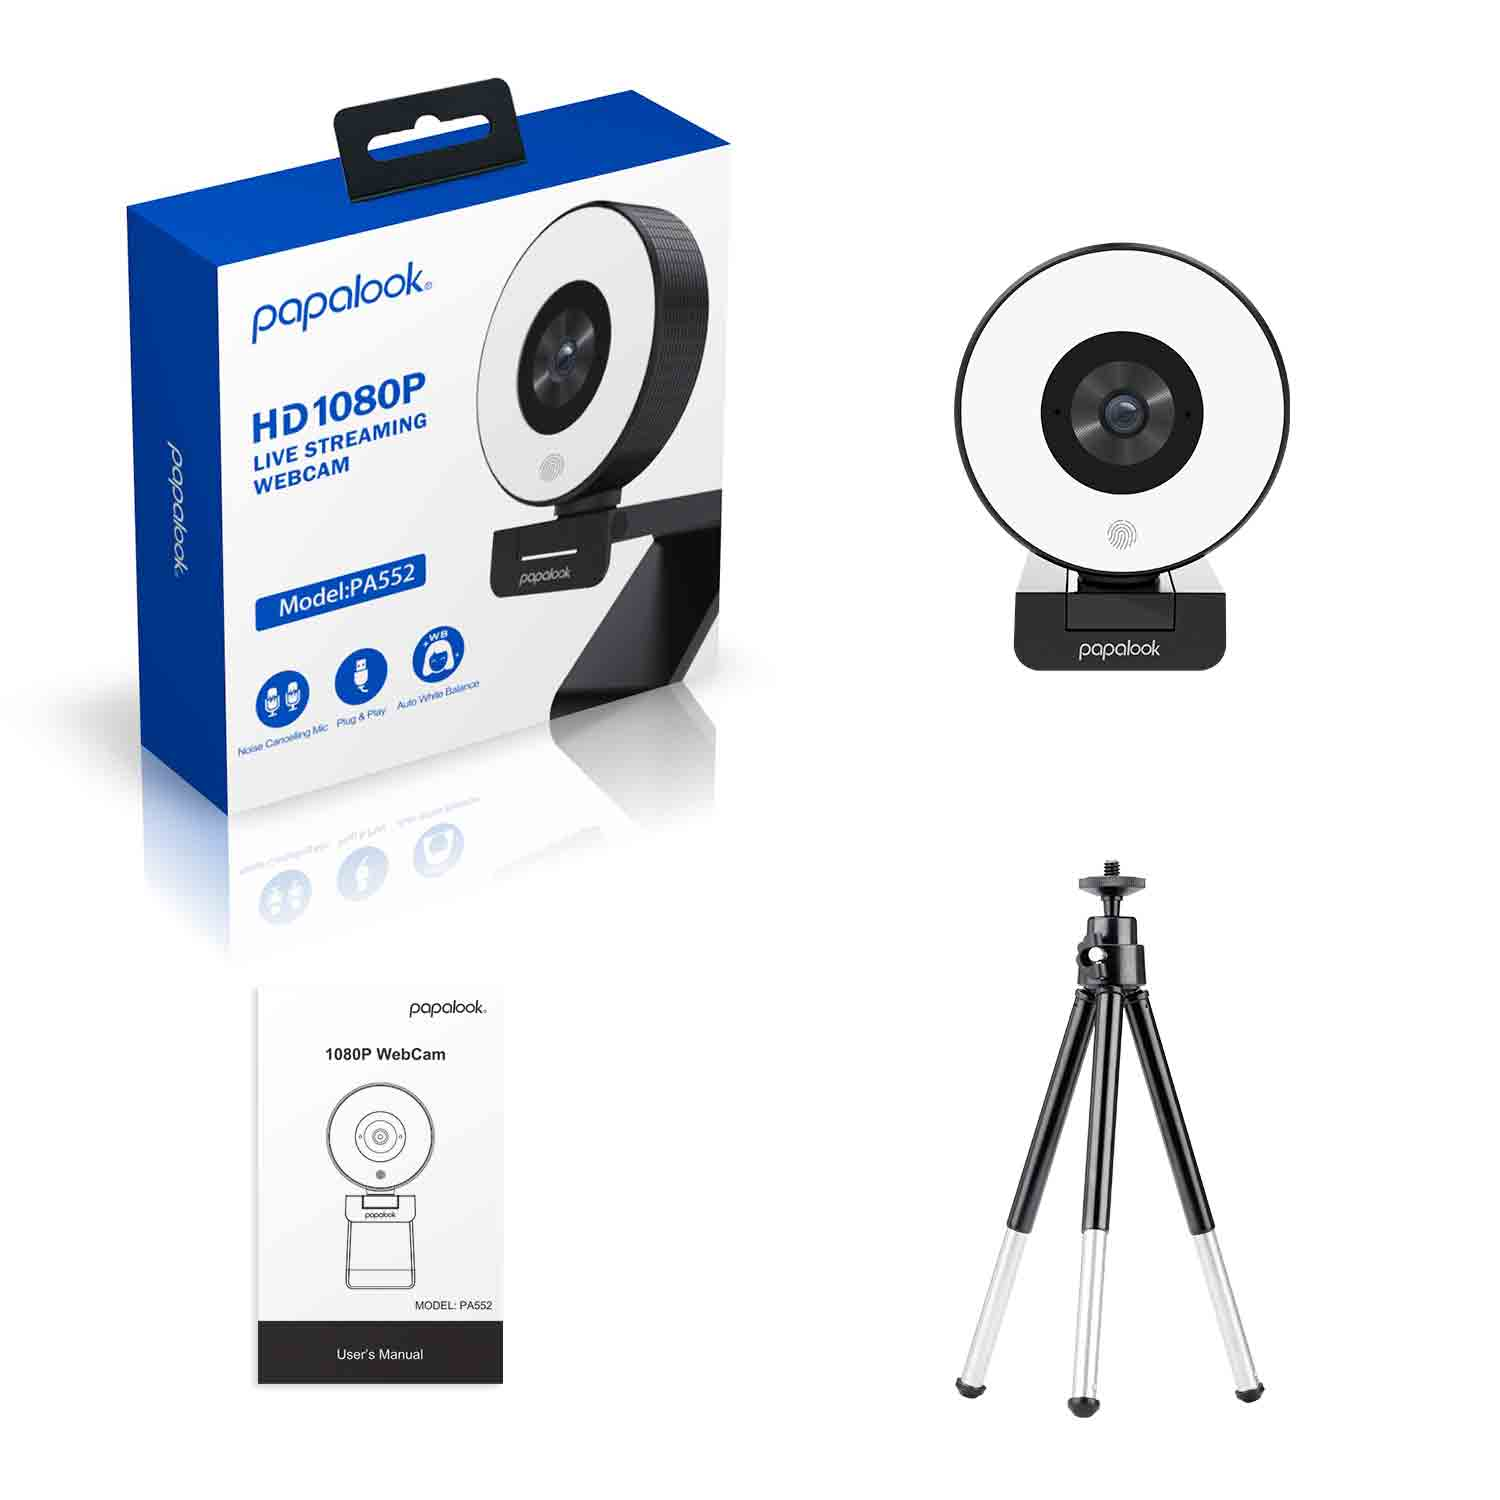 [Original]AUSDOM PA552 Webcam HD 1080P Fixed Focus USB Web Camera with Microphone Light Tripod for PC Twitch Skype OBS Steam